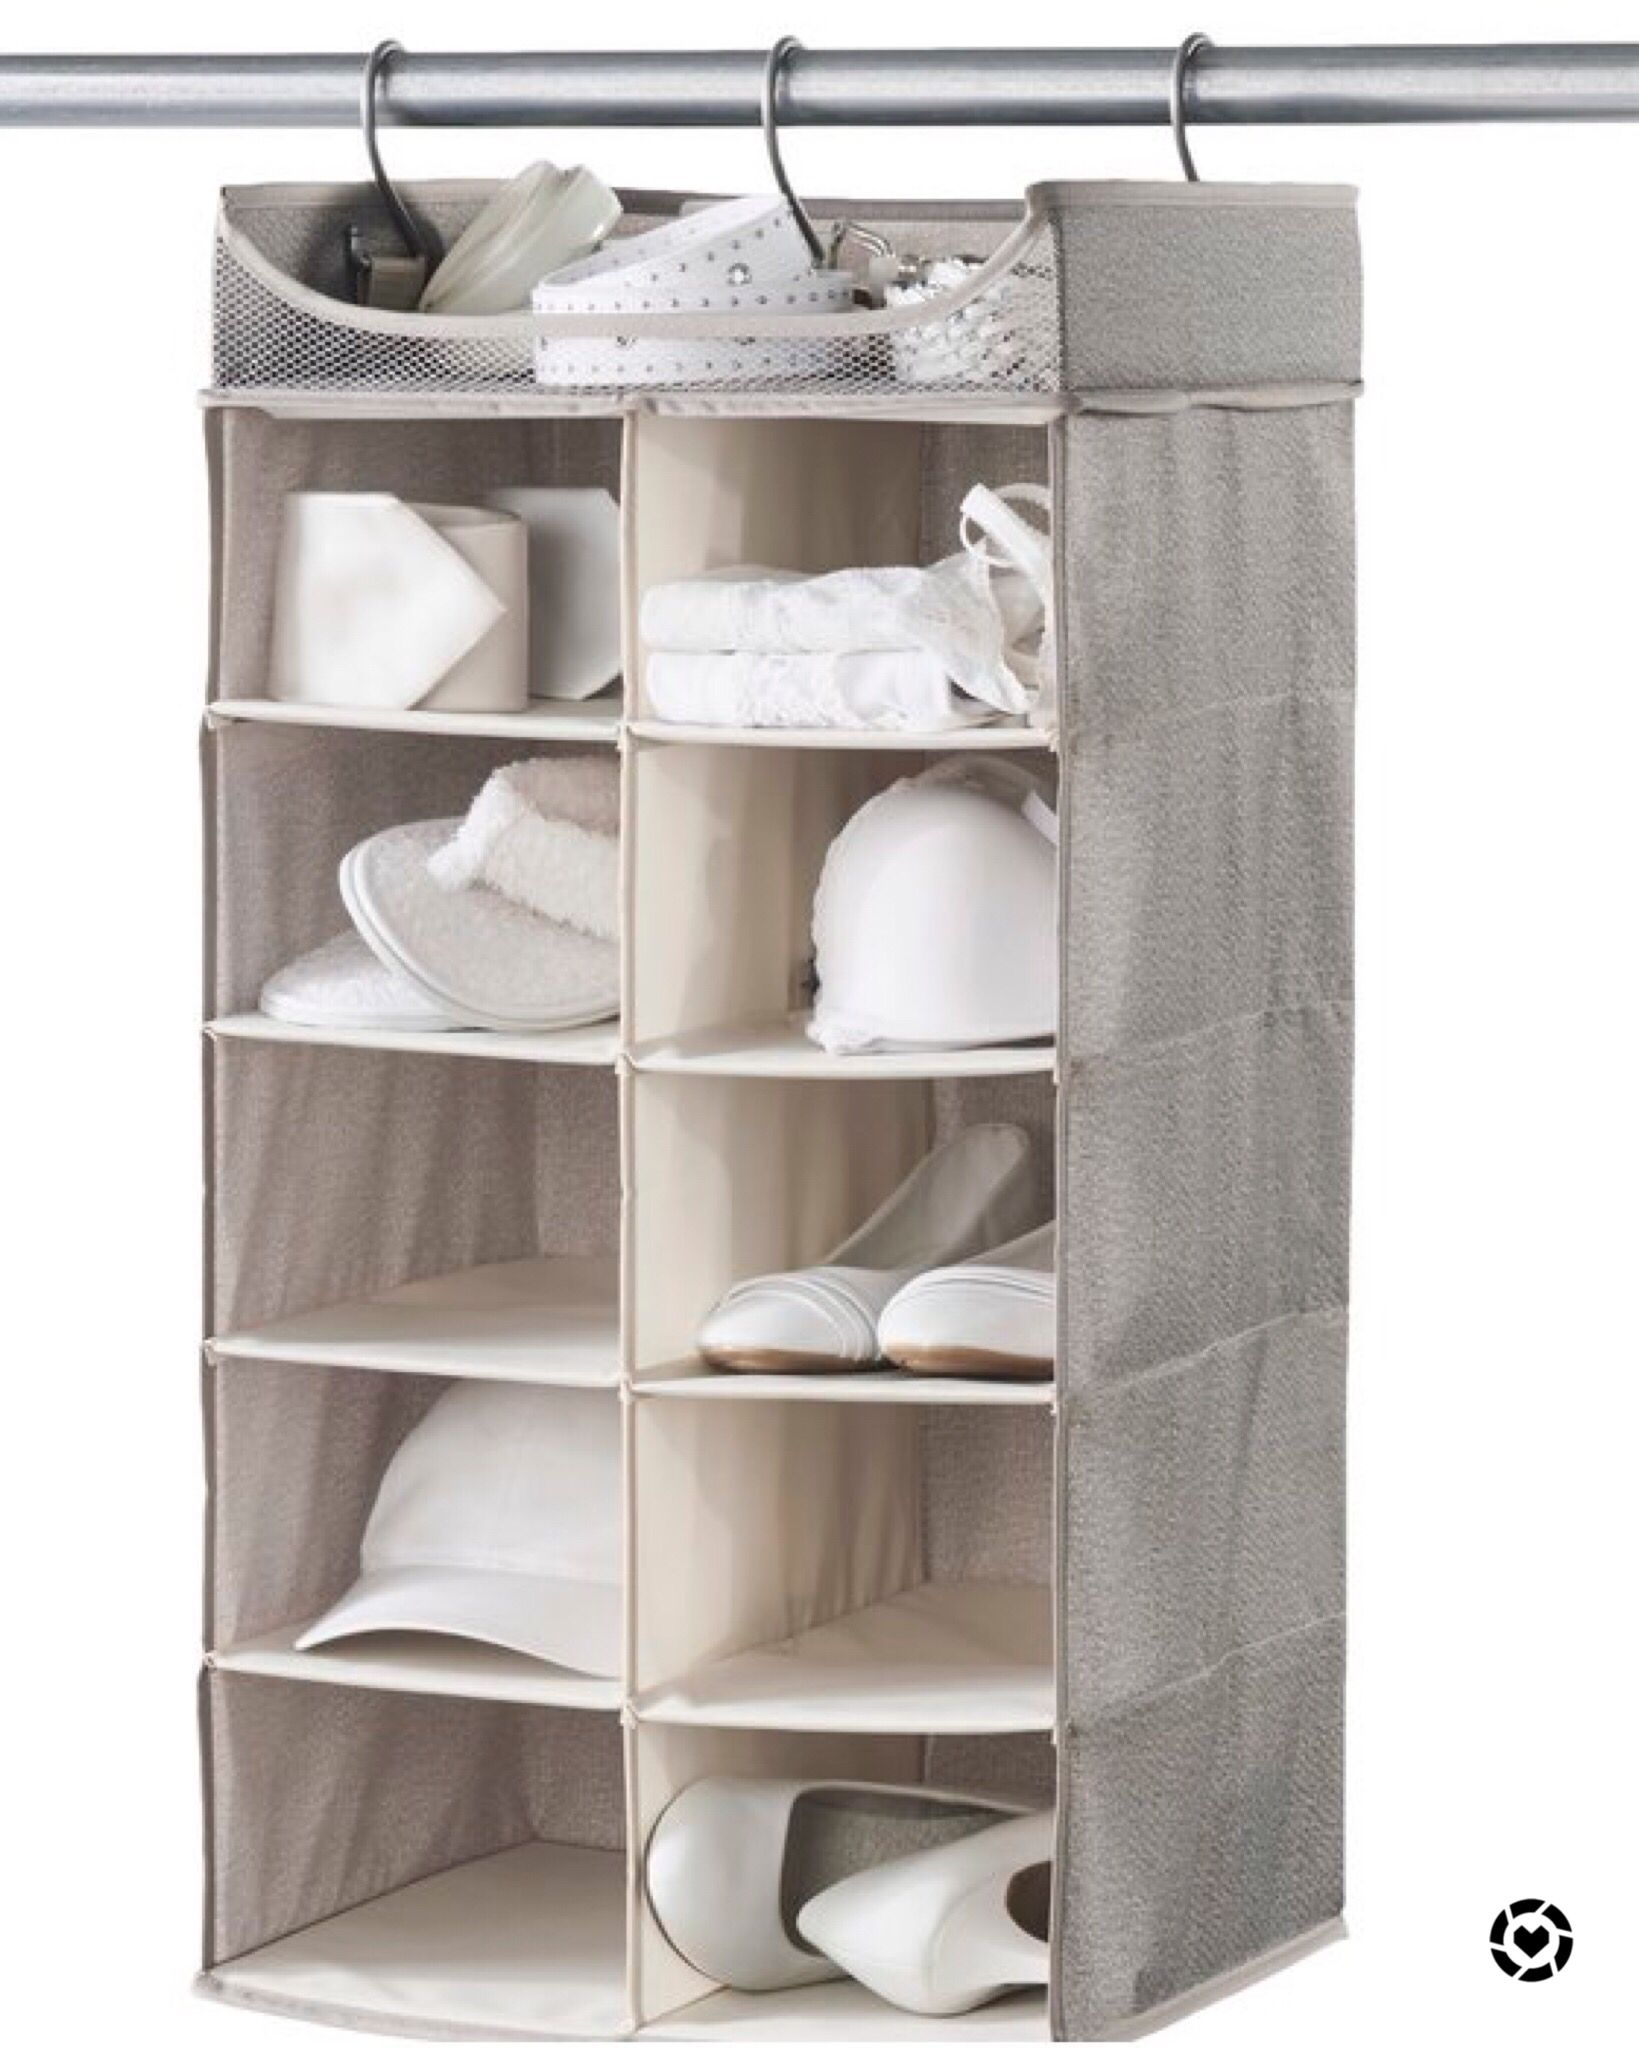 a7e9cc58a86 Pin by Haley Parker - Style on Closet Organization Goals in 2019 ...